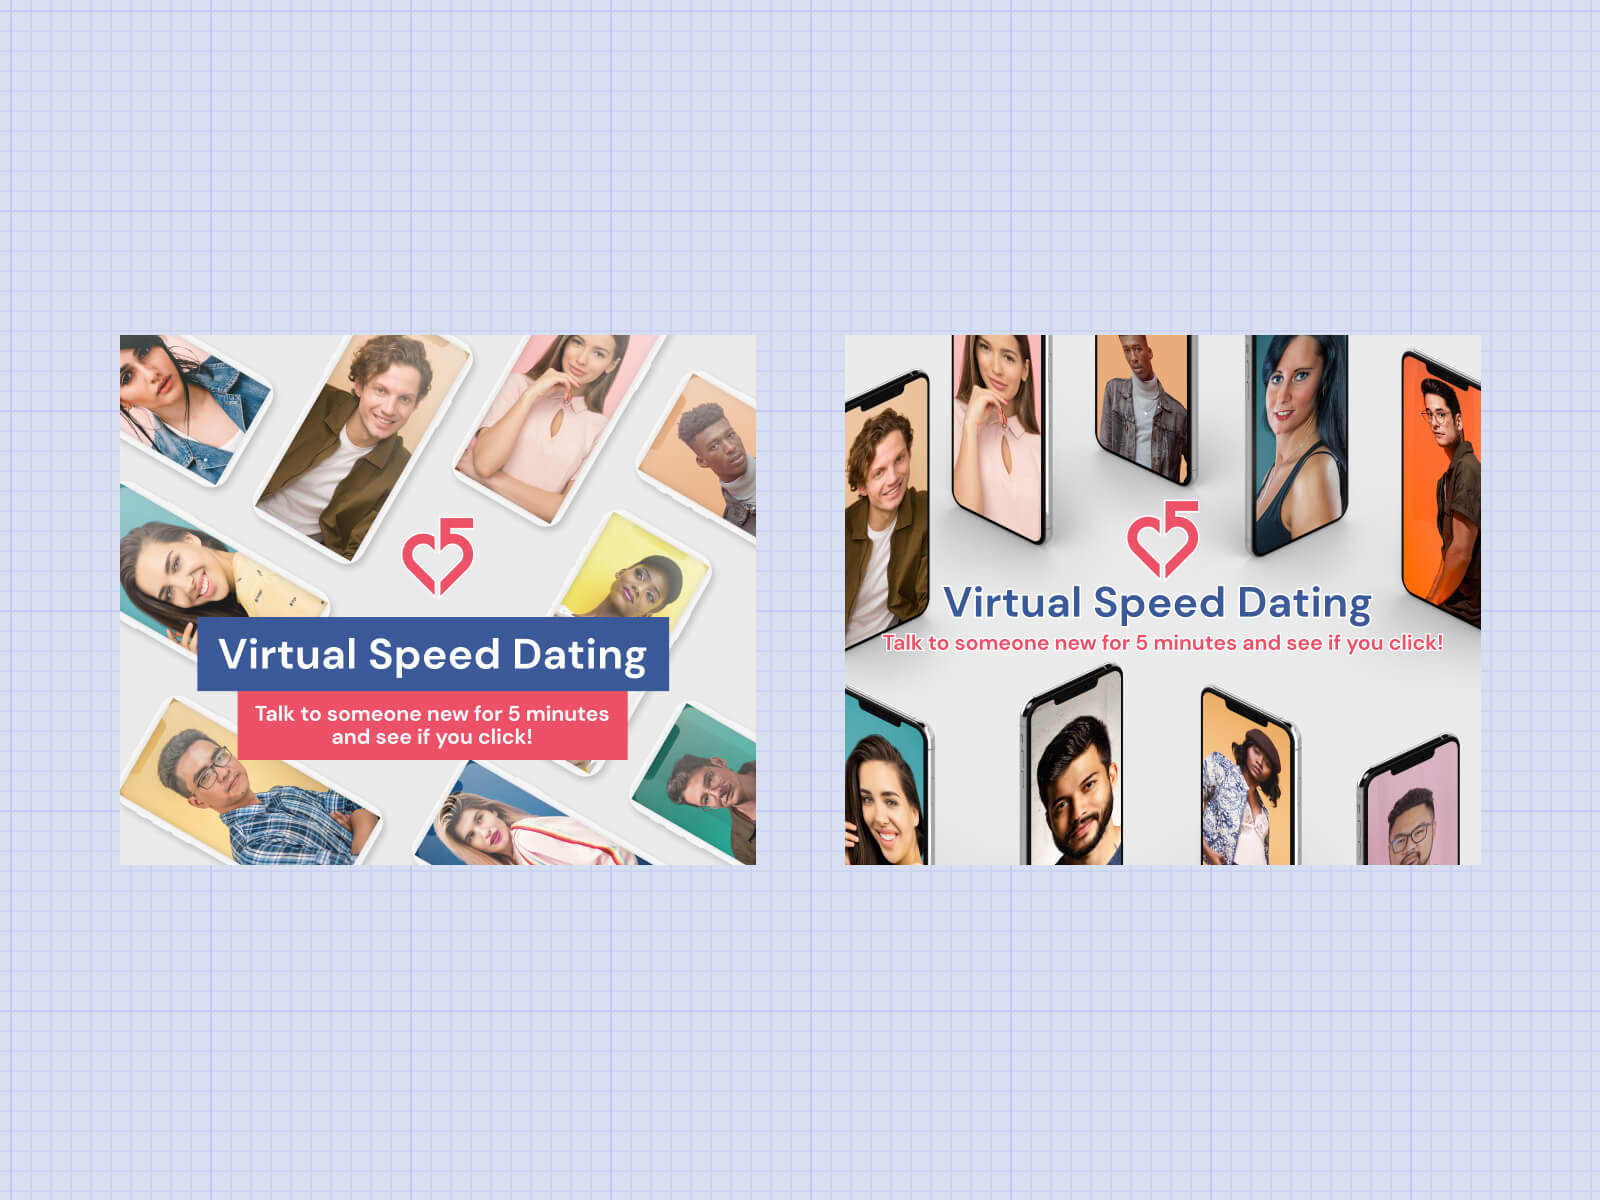 virtual-speed-dating-ads2